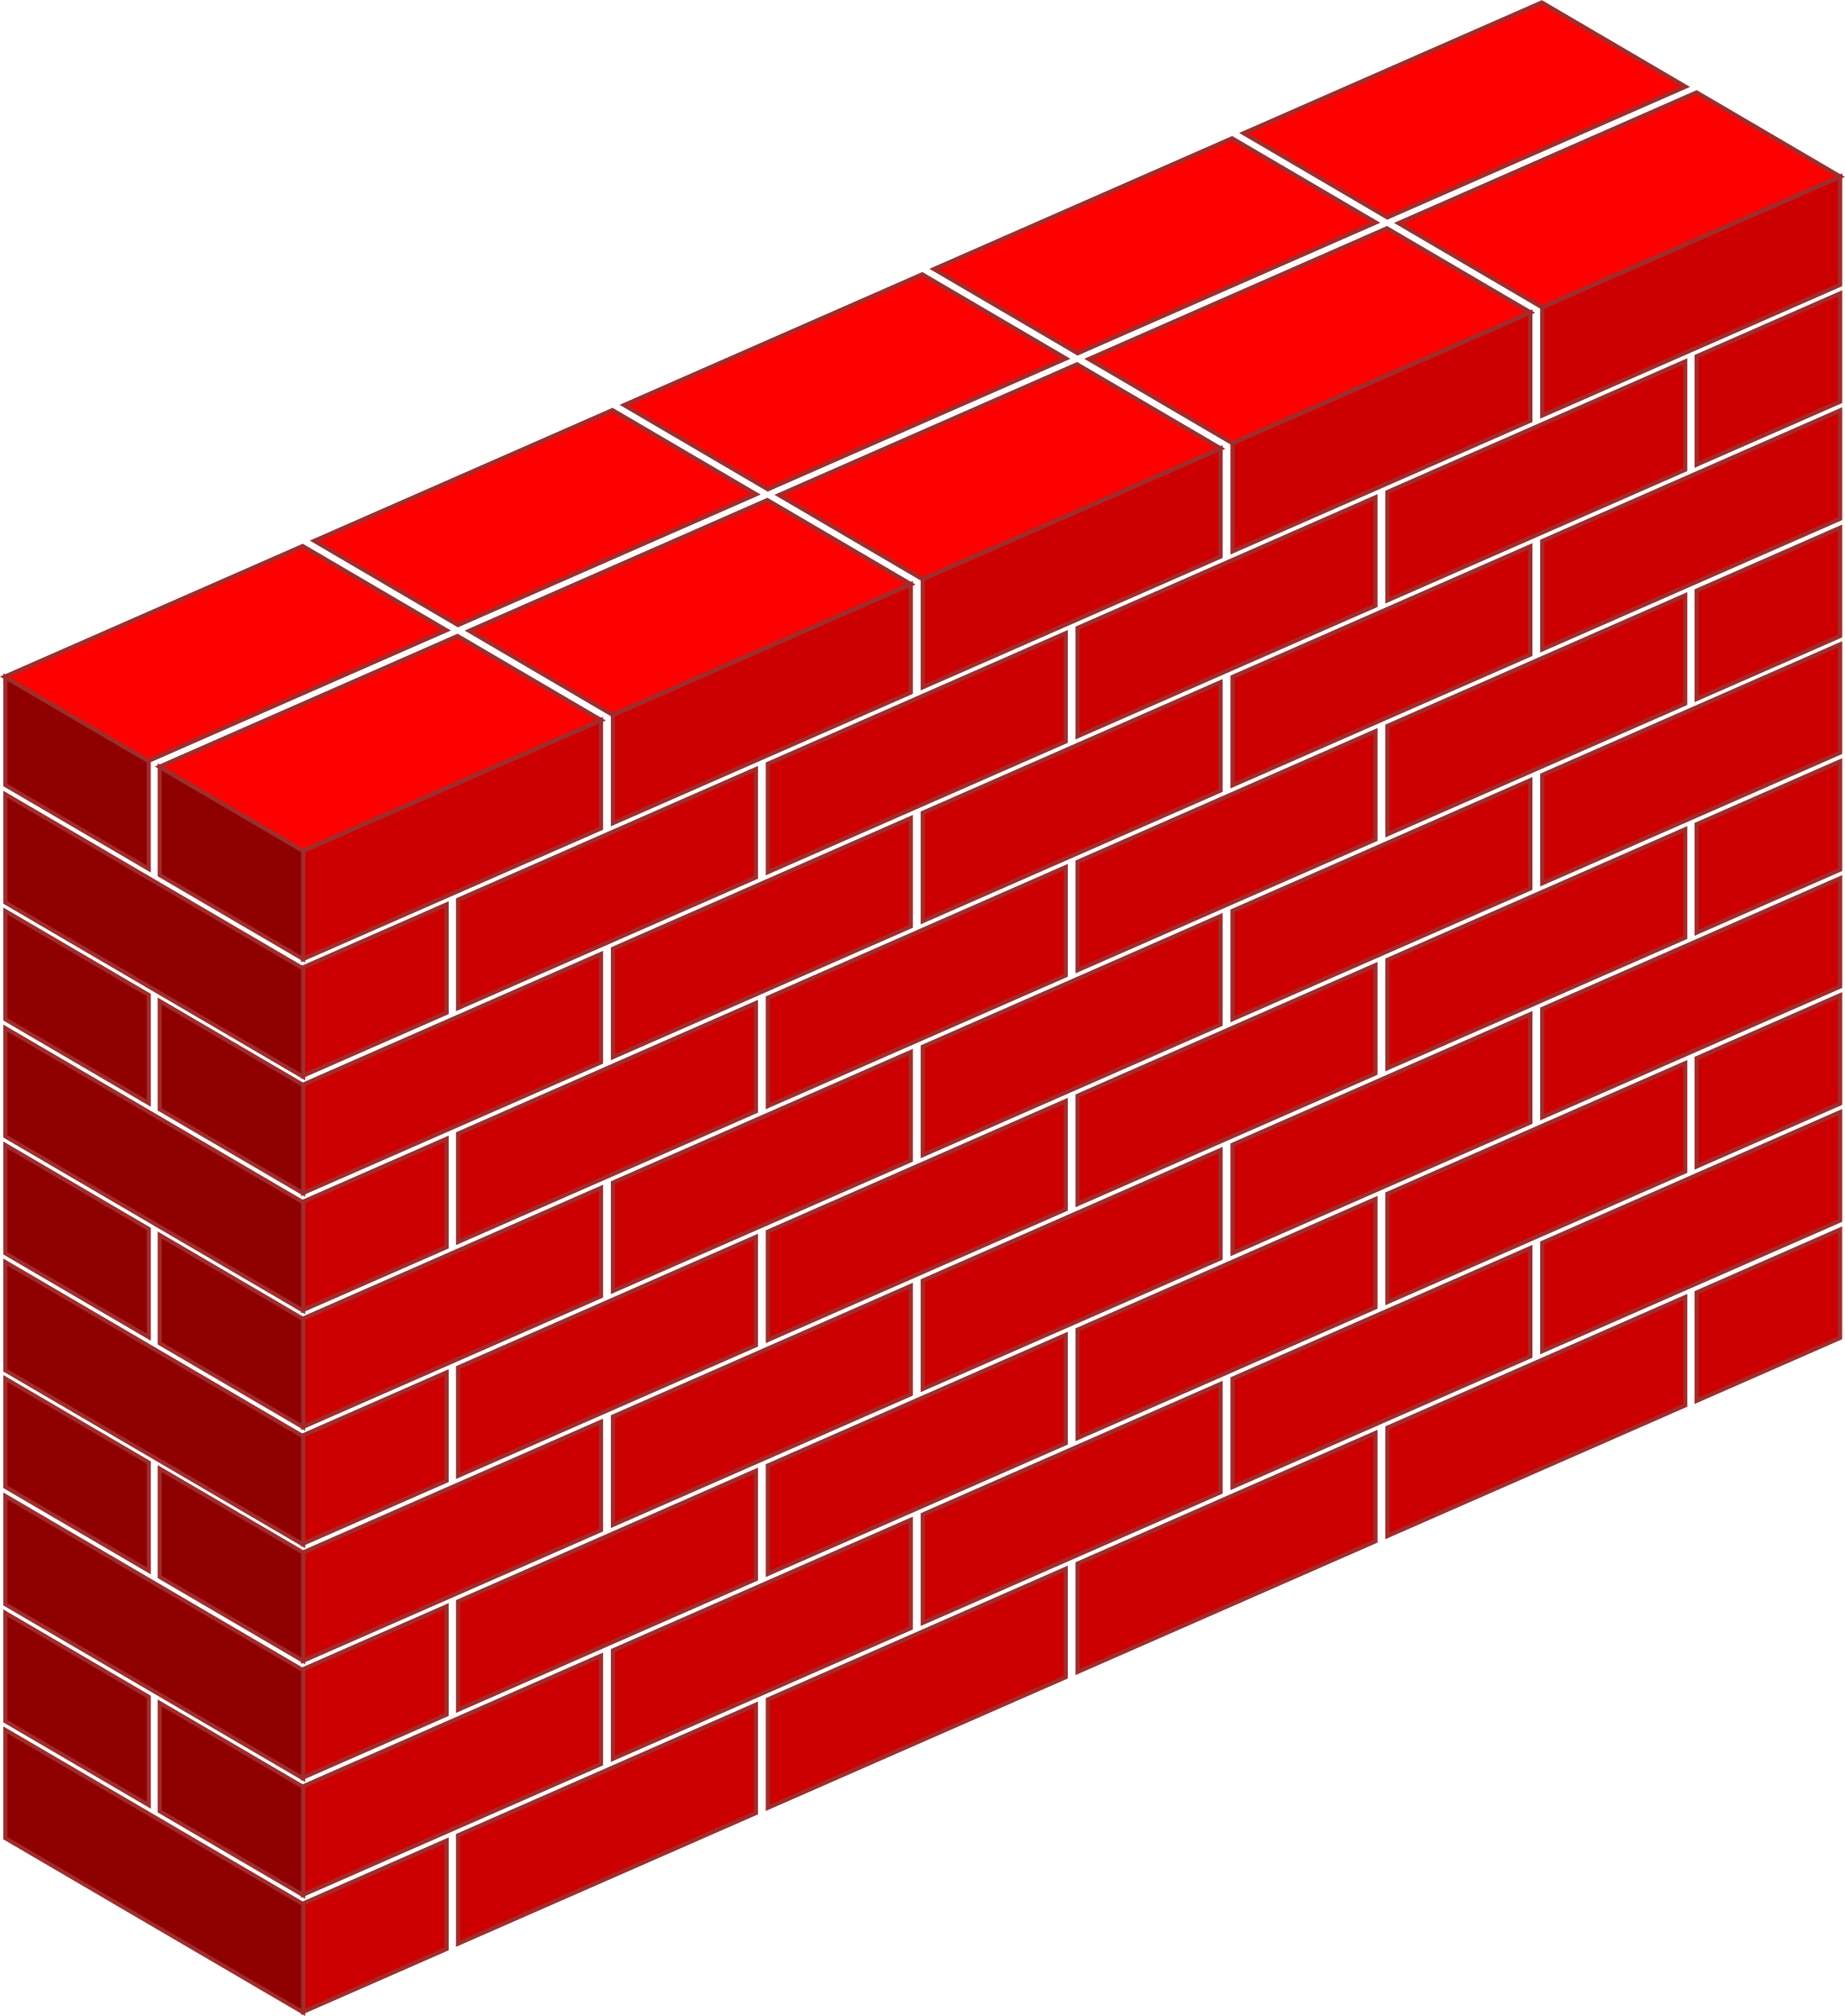 Red Brick Wall Vector Clipart image - Free stock photo